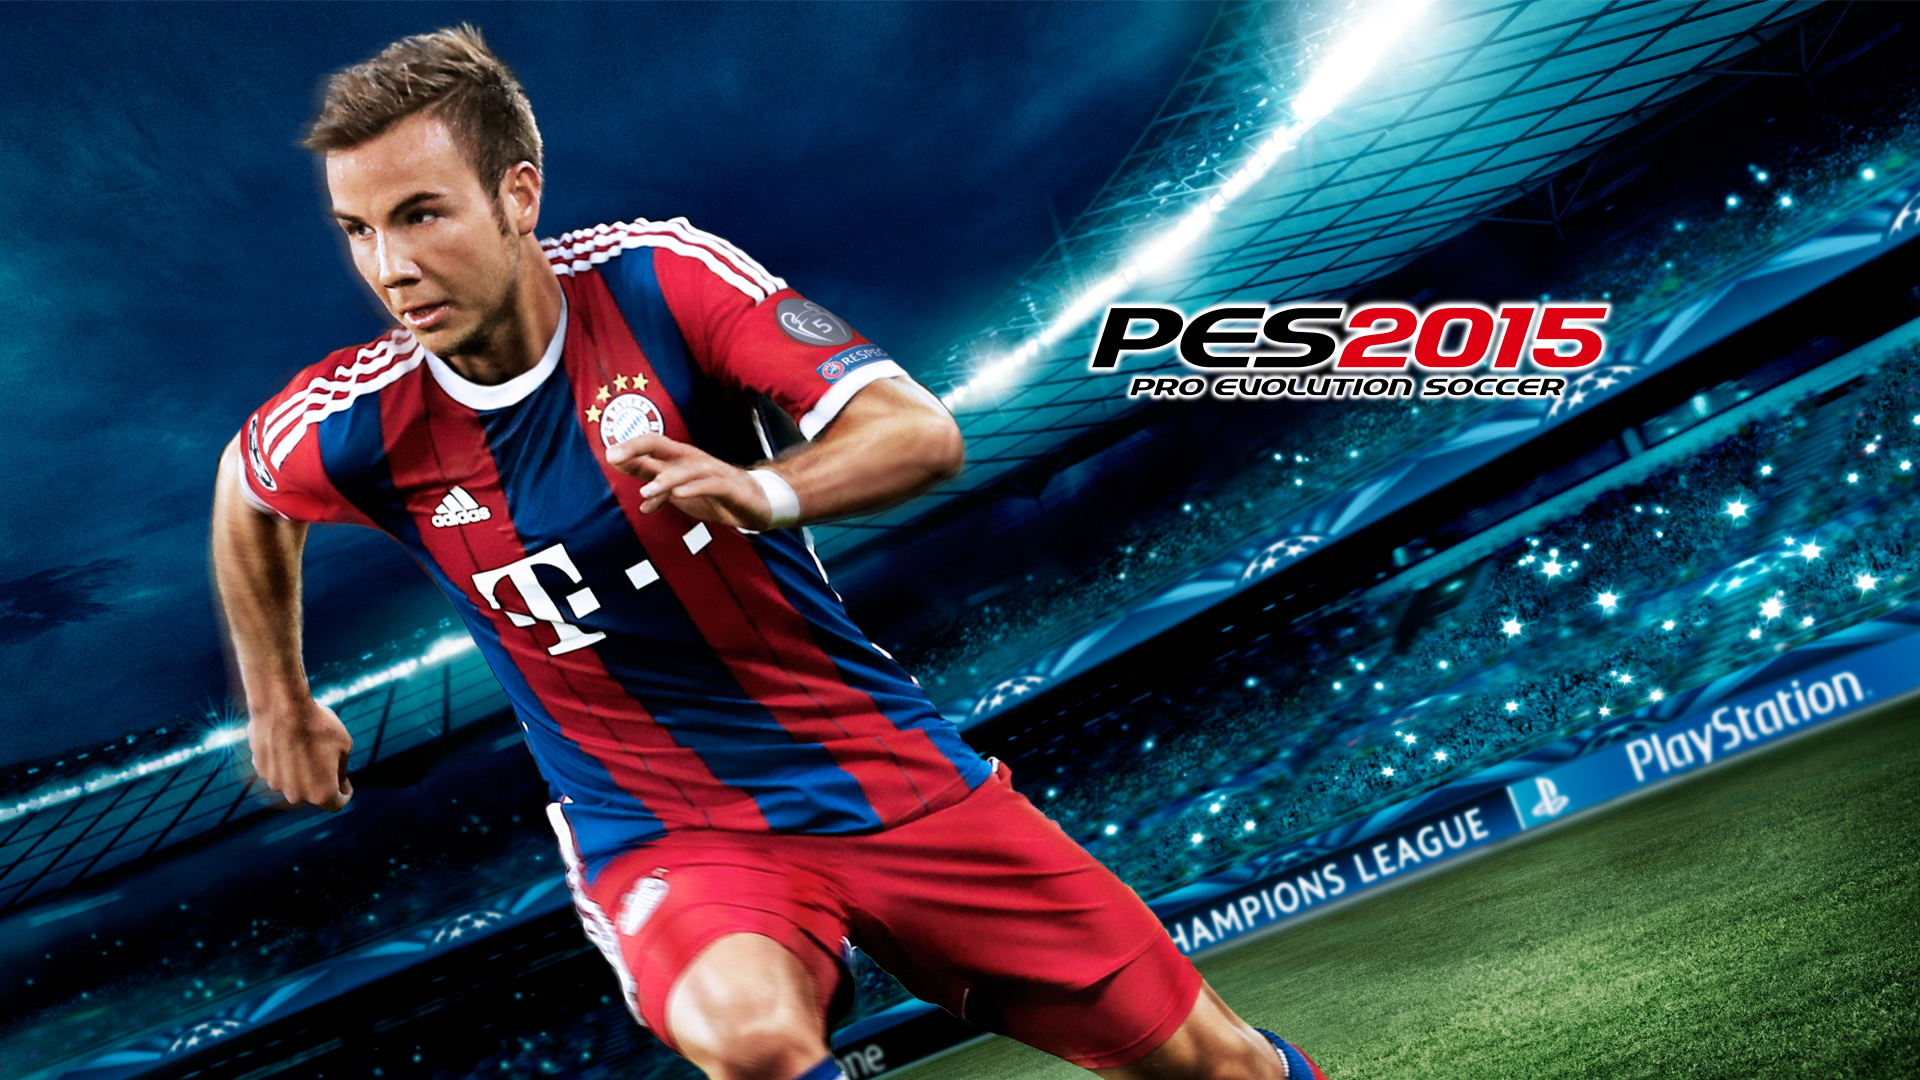 Pro Evolution Soccer 2015 Game | PS4 - PlayStation